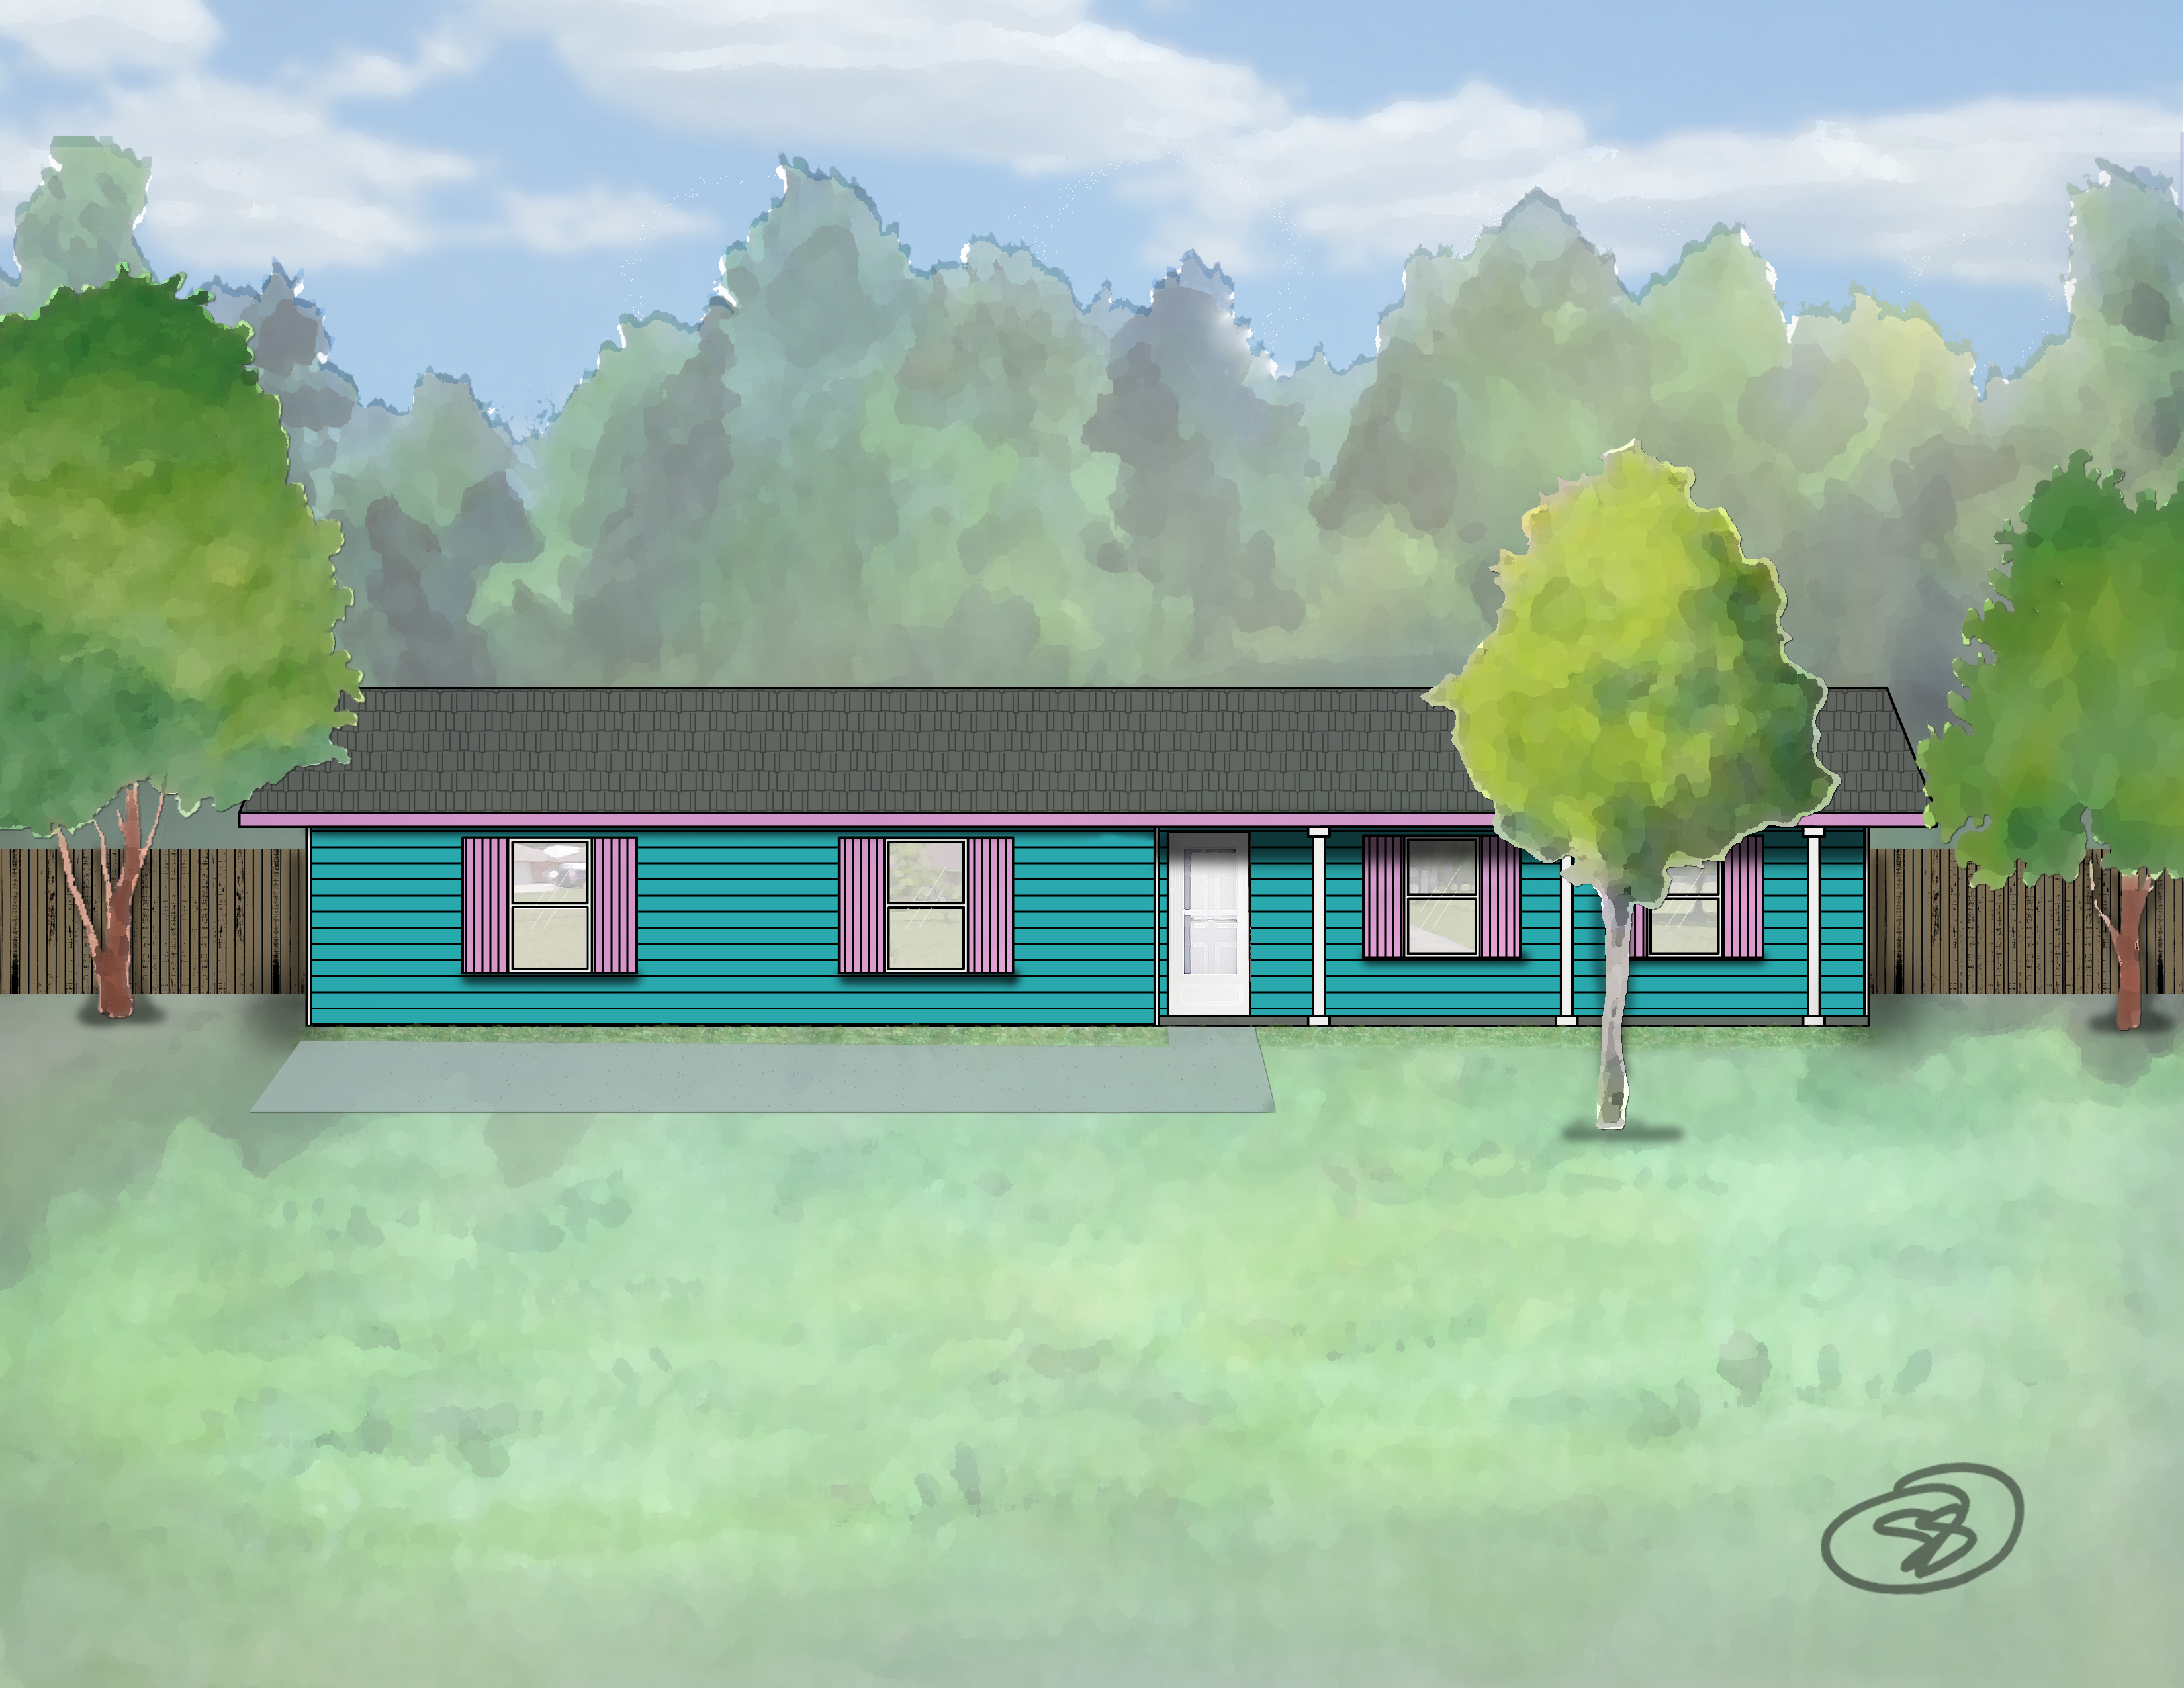 Teal & Pink House